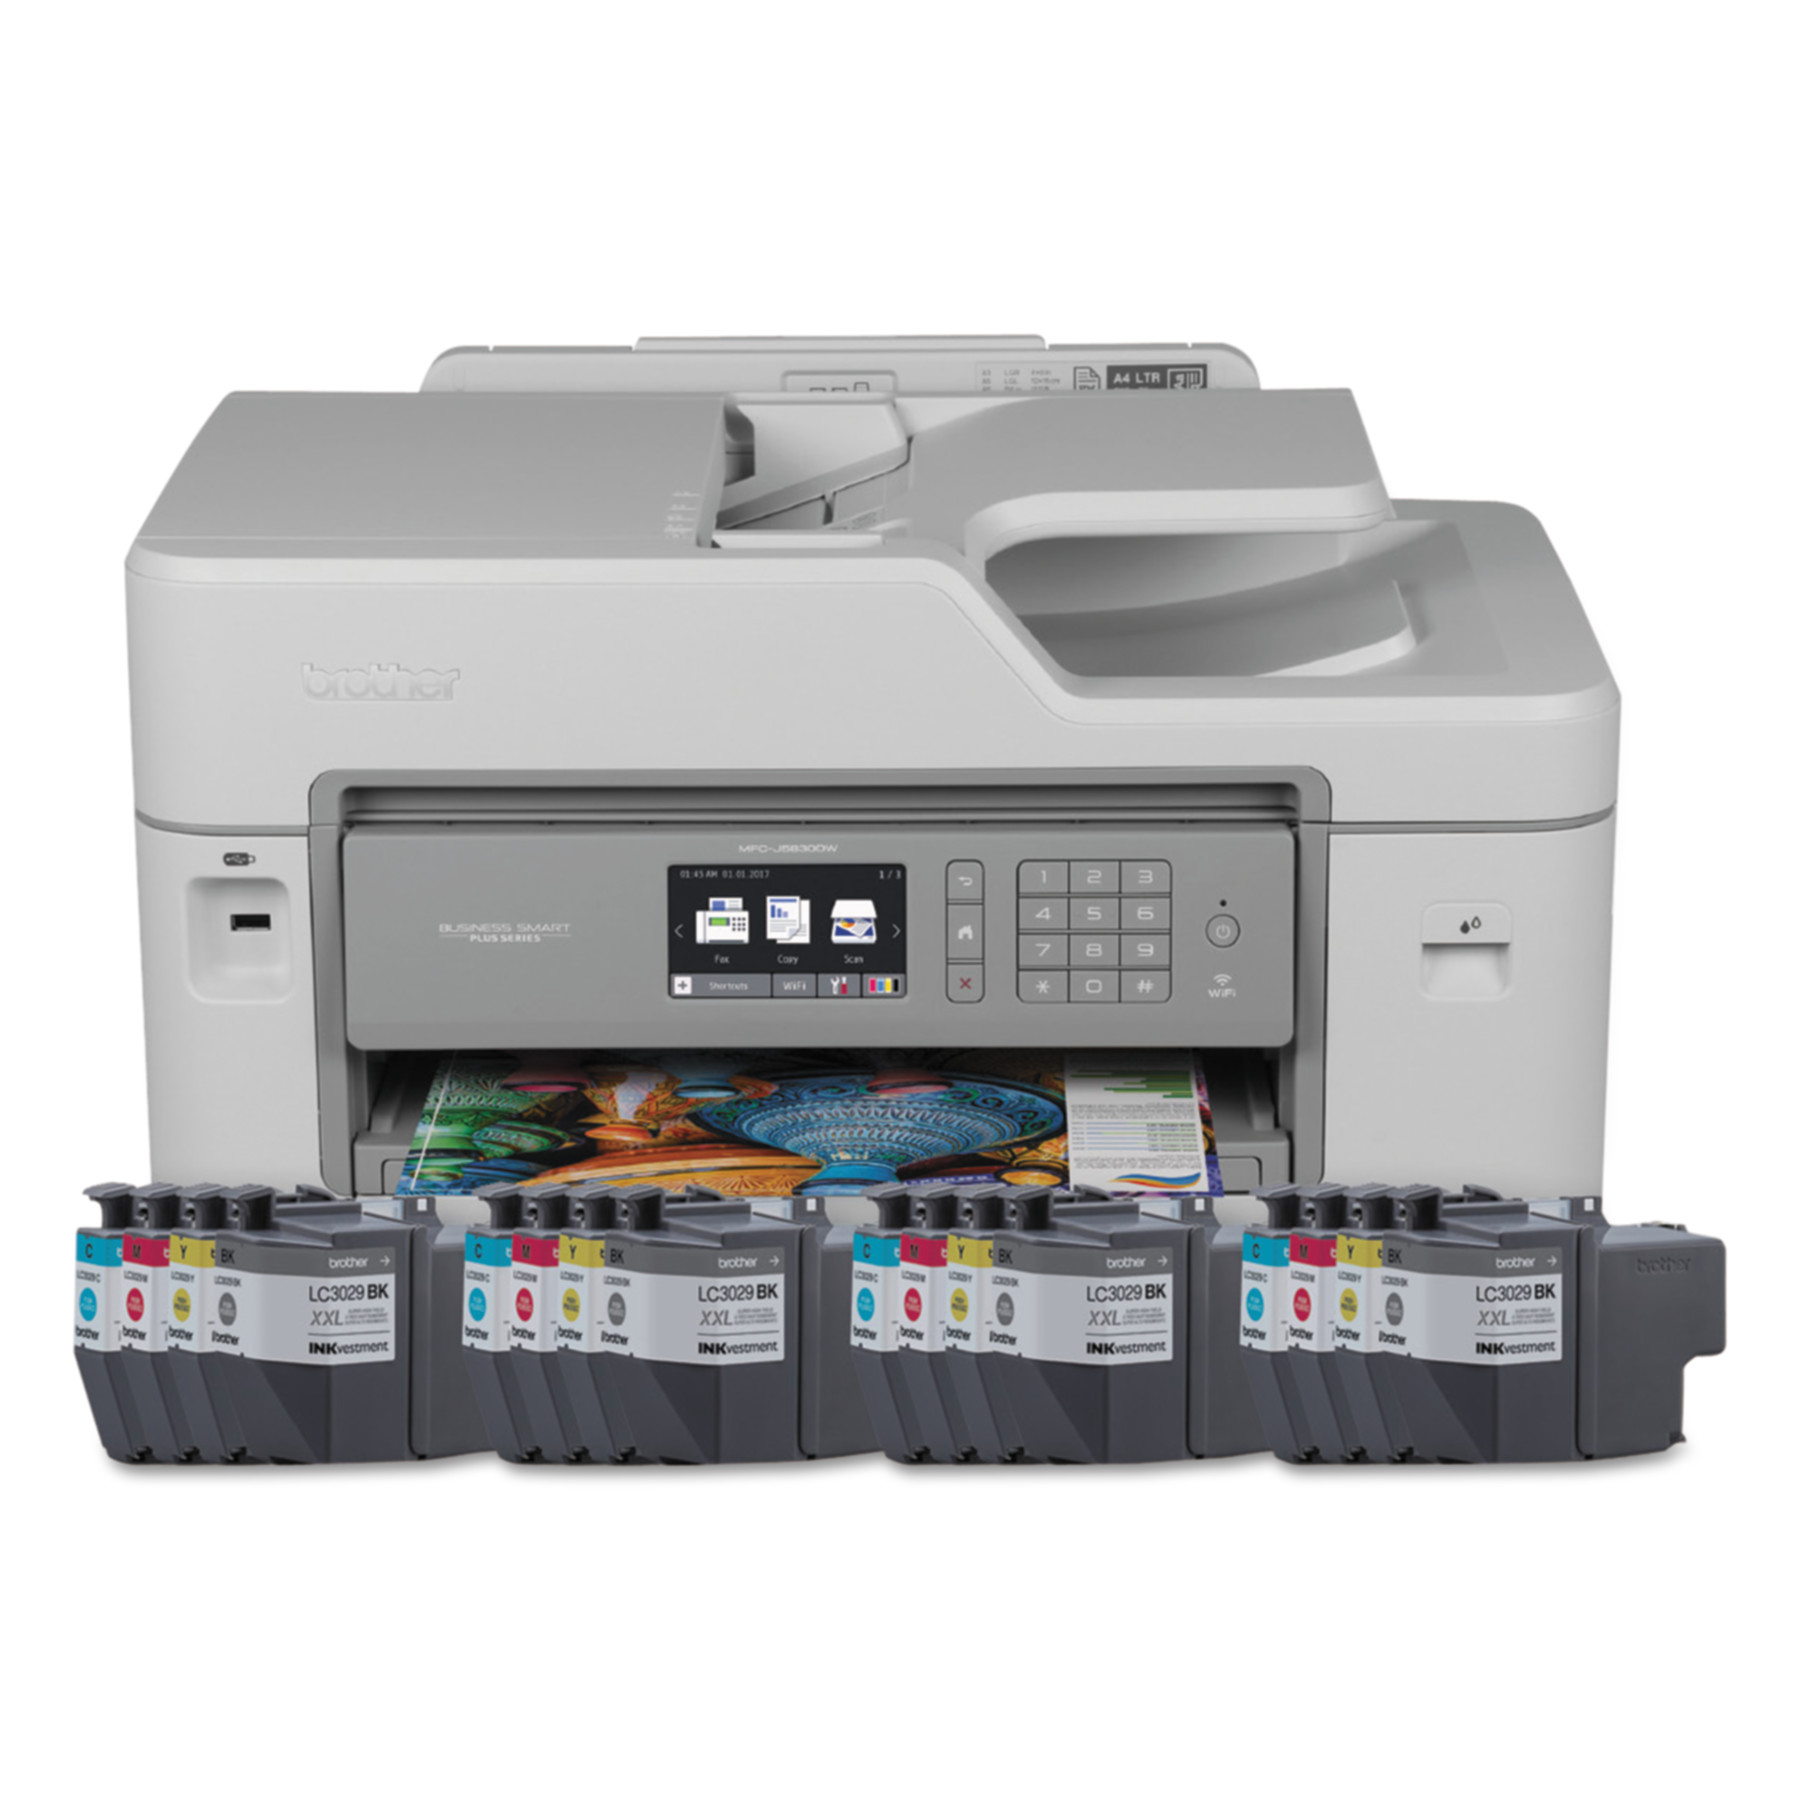 Brother Business Smart Plus MFC-J5830DWXL Color Inkjet All-in-One Printer Series by Brother